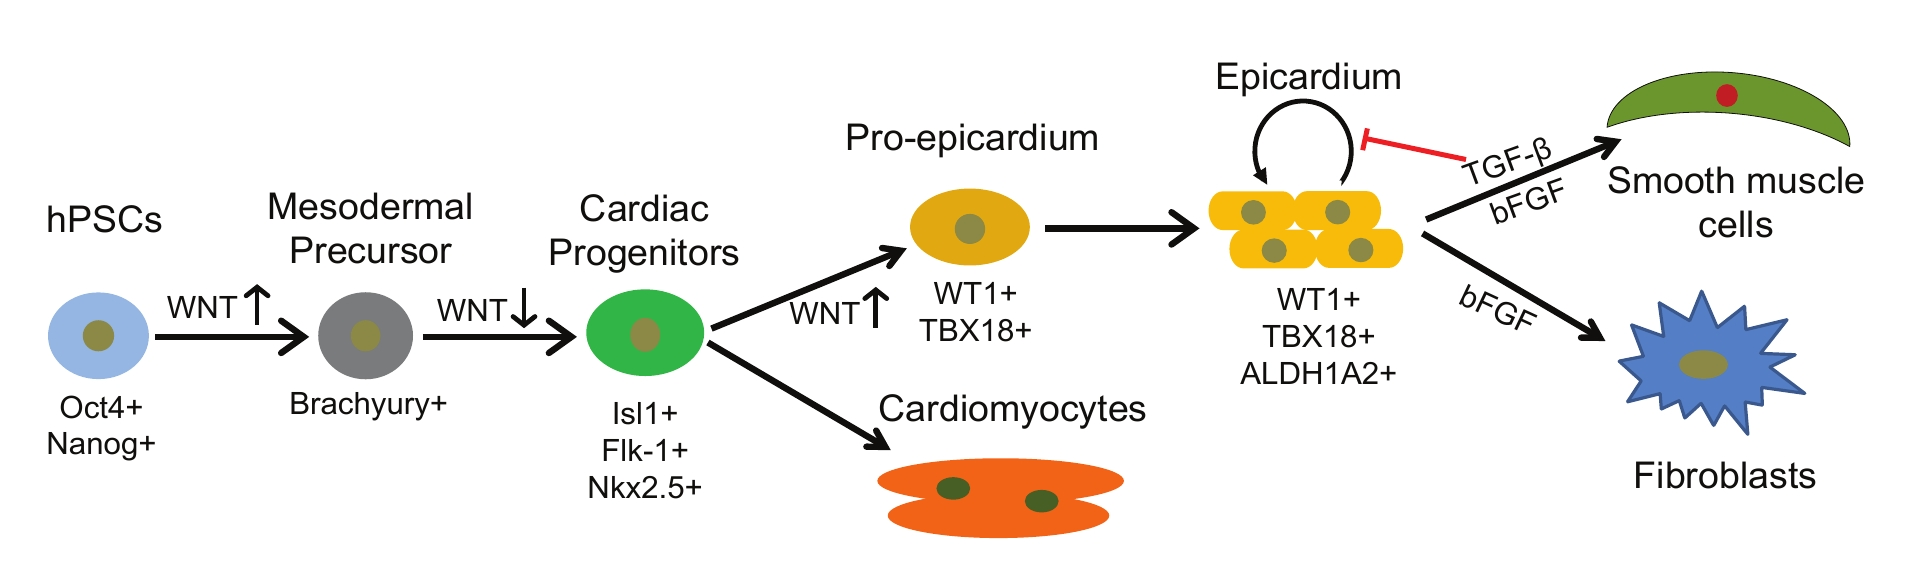 Figure 1. A model highlighting the generation of epicardial cells and cardiomyocytes from human pluripotent stem cells (hPSC) by stage-specific modulation of Wnt signaling, and long-term maintenance of epicardial cells using TGF-β inhibitors. The labels below the cells denote specific markers of corresponding cell types.